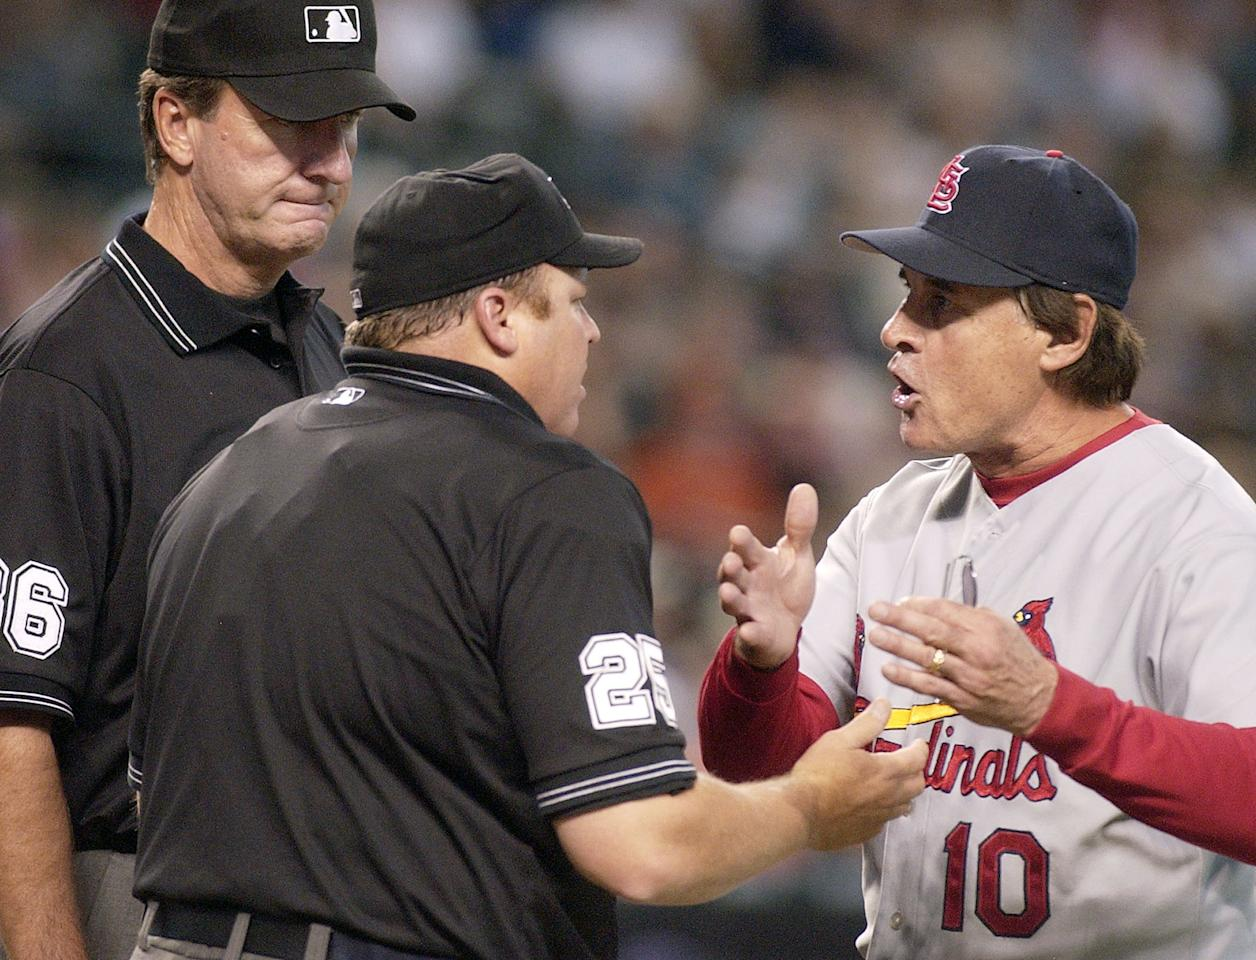 St. Louis Cardinals manager Tony La Russa, right, argues with home plate umpire Fieldin Culbreth (25) and third base umpire Tim McClelland, left, after being thrown out of the baseball game for arguing balls and strikes during the fifth inning against the Arizona Diamondbacks on Sunday, Sept. 10, 2006, in Phoenix. (AP Photo/Tom Hood)